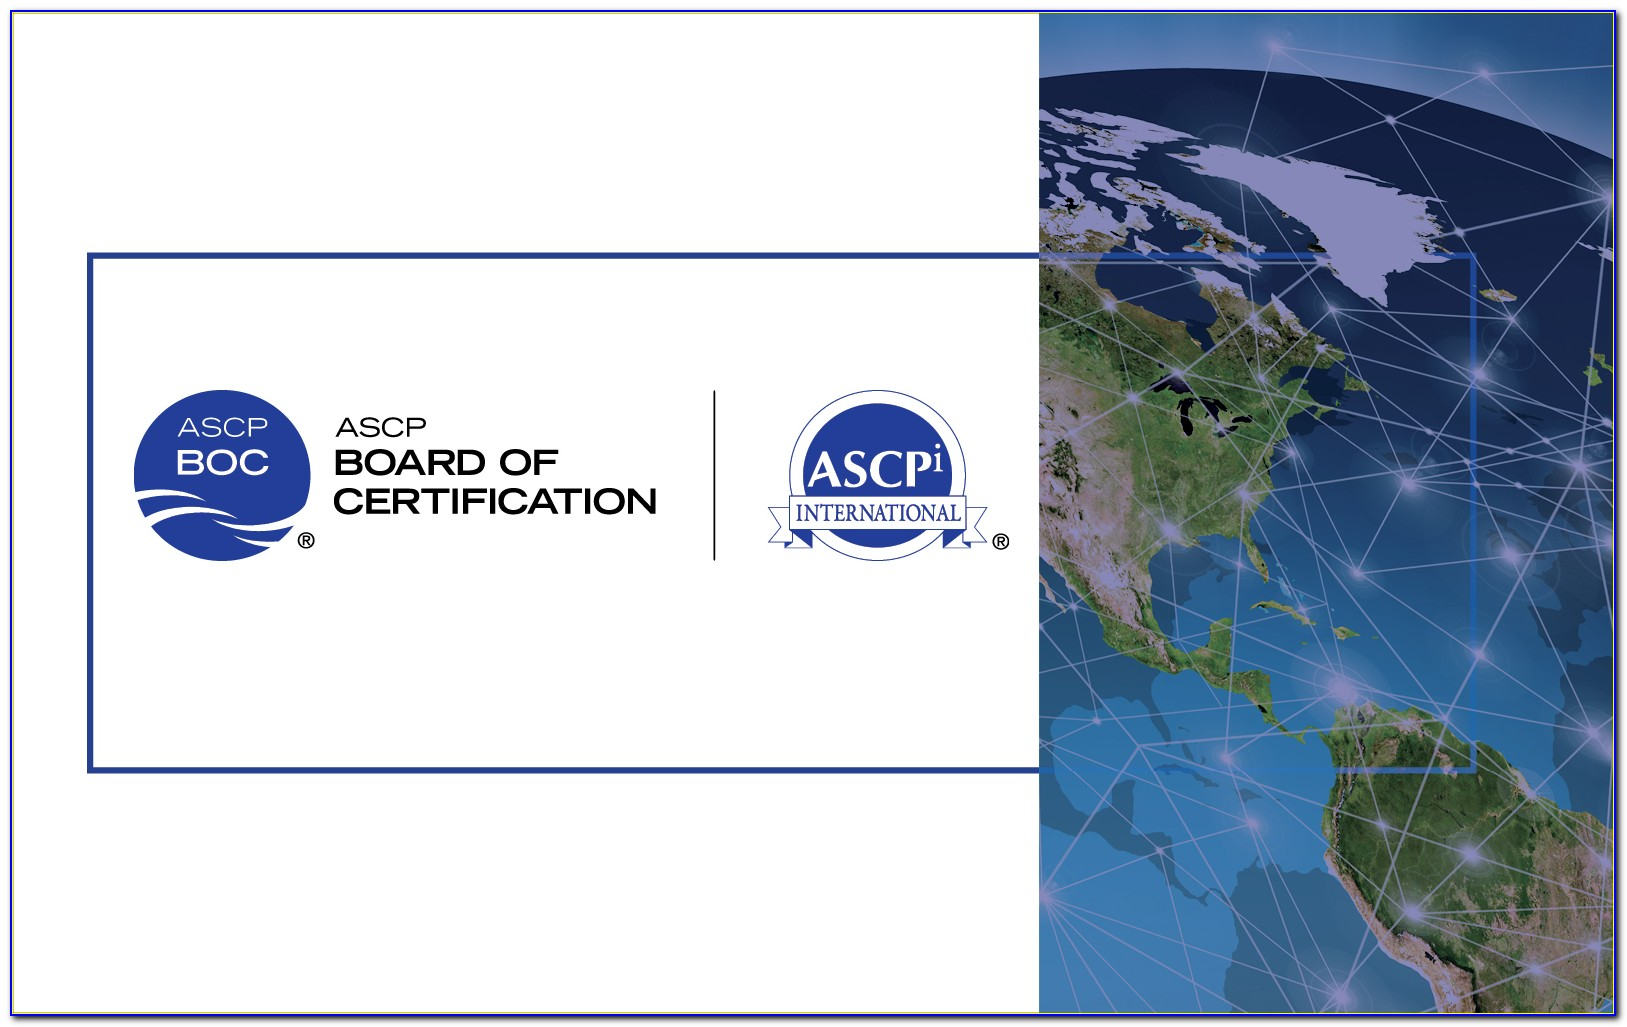 Ascp Certification Renewal Requirements